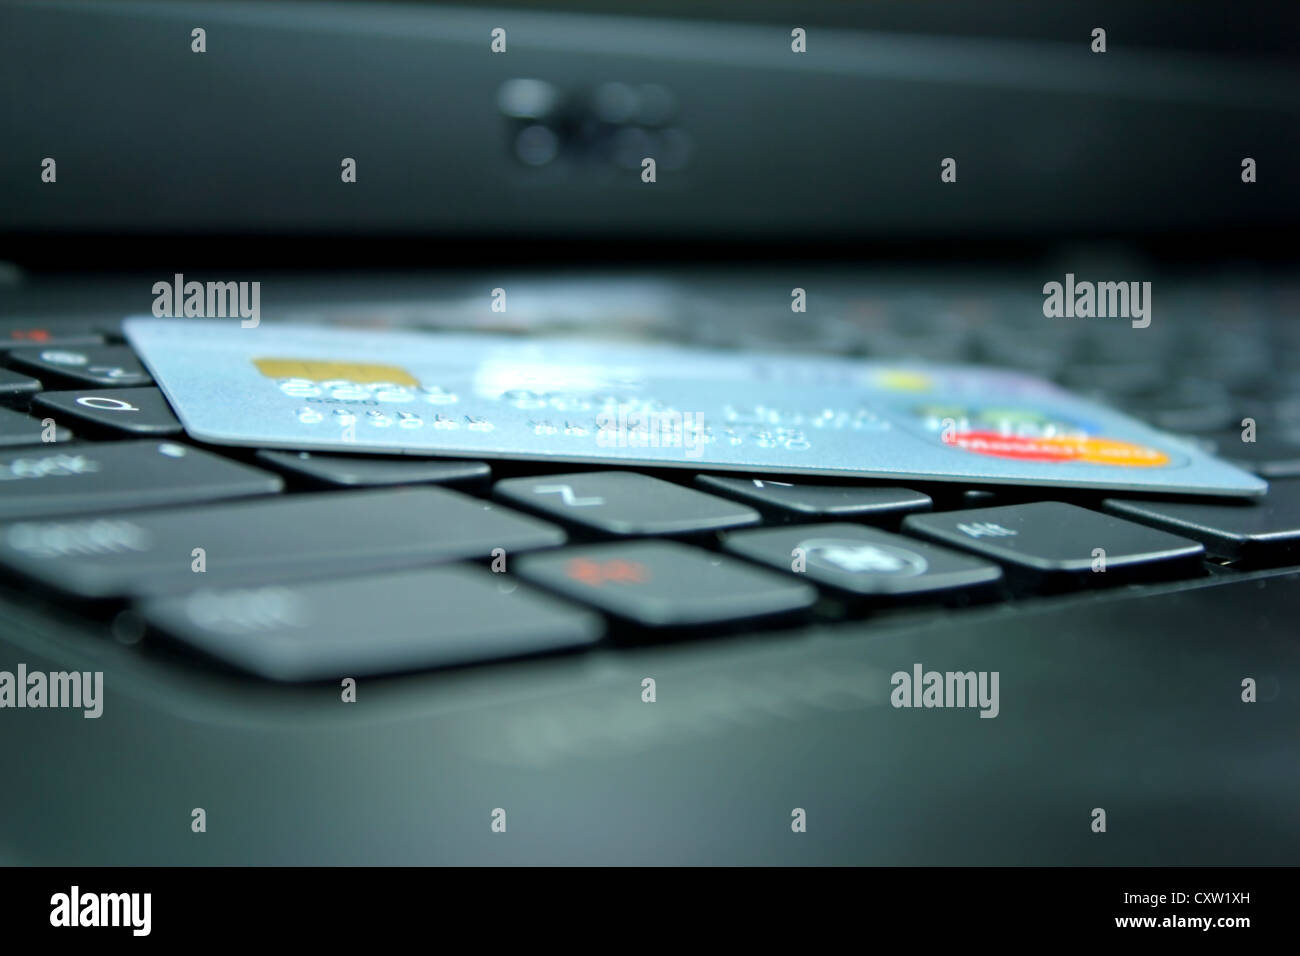 Credit card on the keyboard - Stock Image